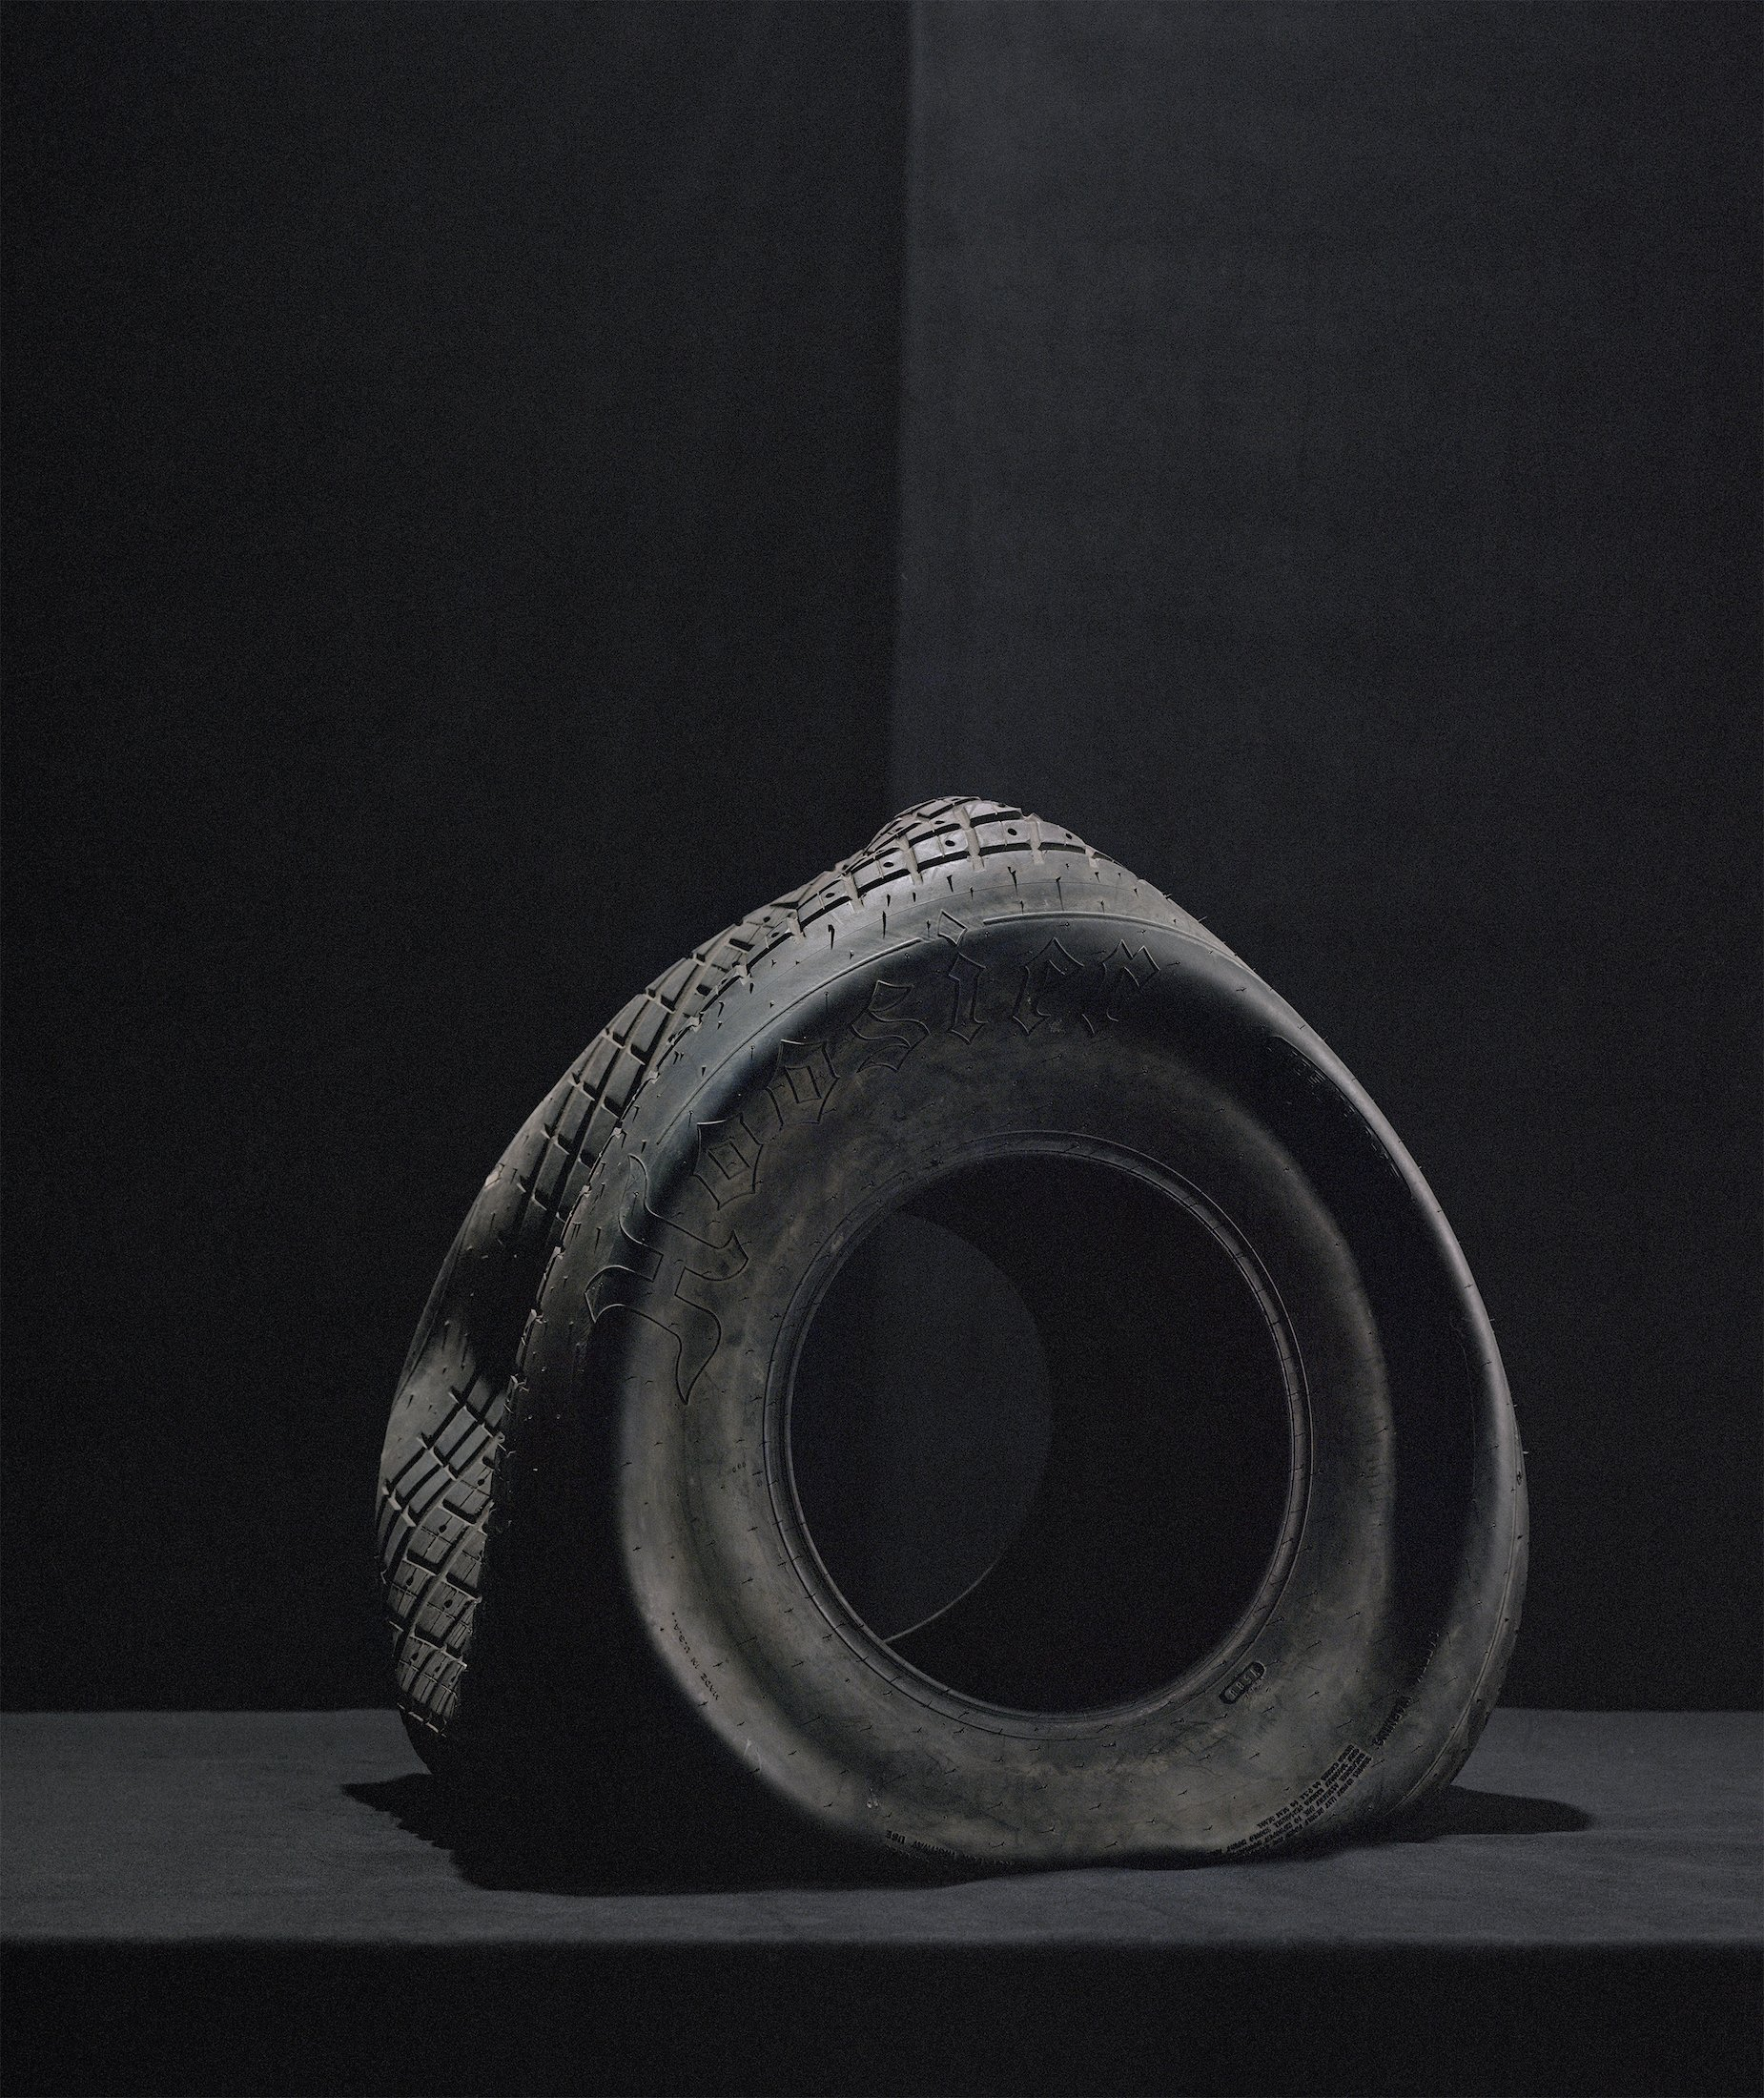 Still Life with Tire II, 2019, archival pigment print, 56.5 x 47.5 in.